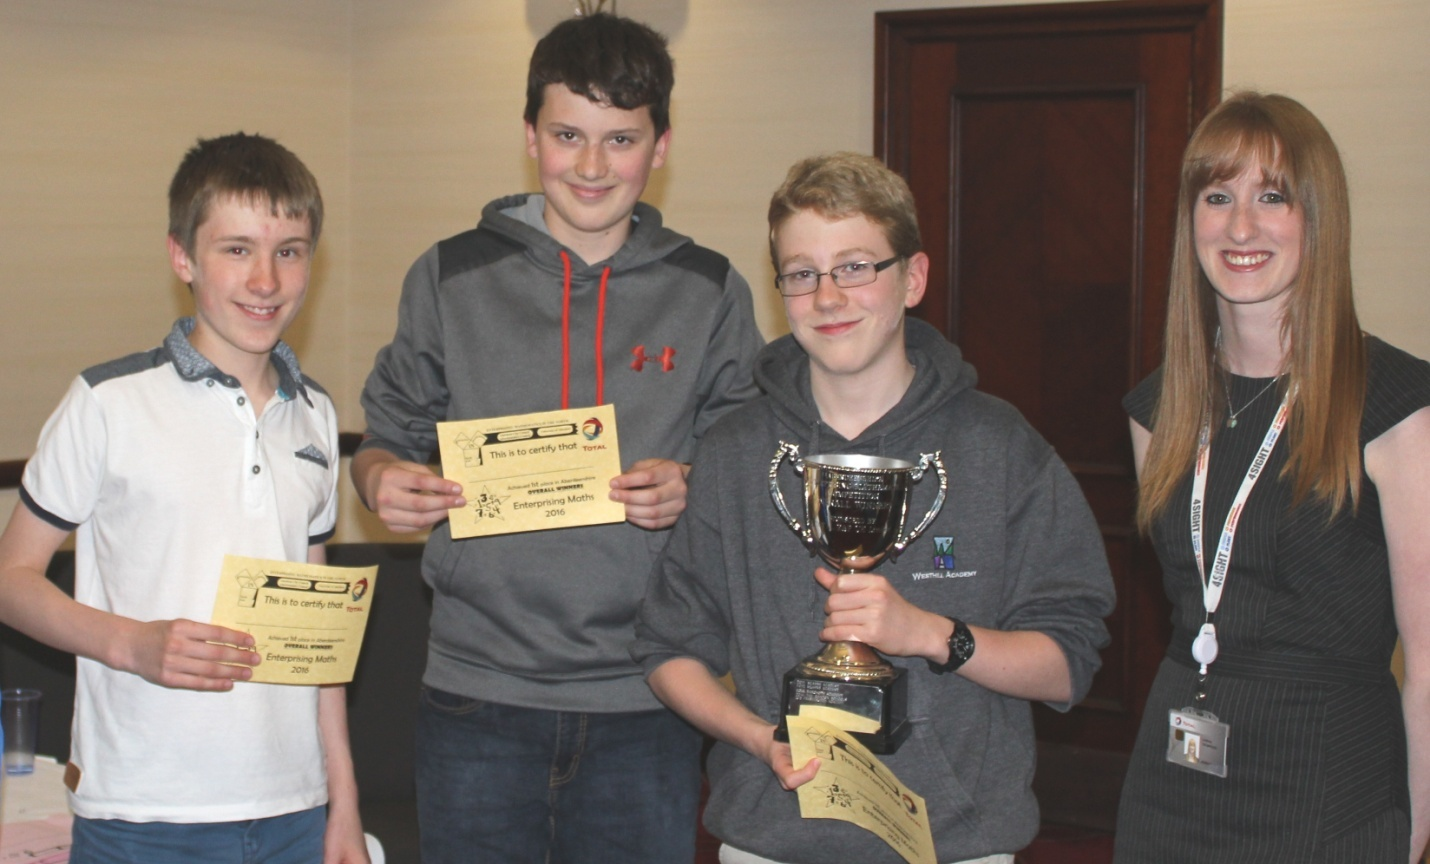 Westhill Academy winners (L-R) Ieuen Harries, Jacob Dohan and James Marriner with TEP UK Graduate Information Systems Analyst, Lindsey Thompson (far right).